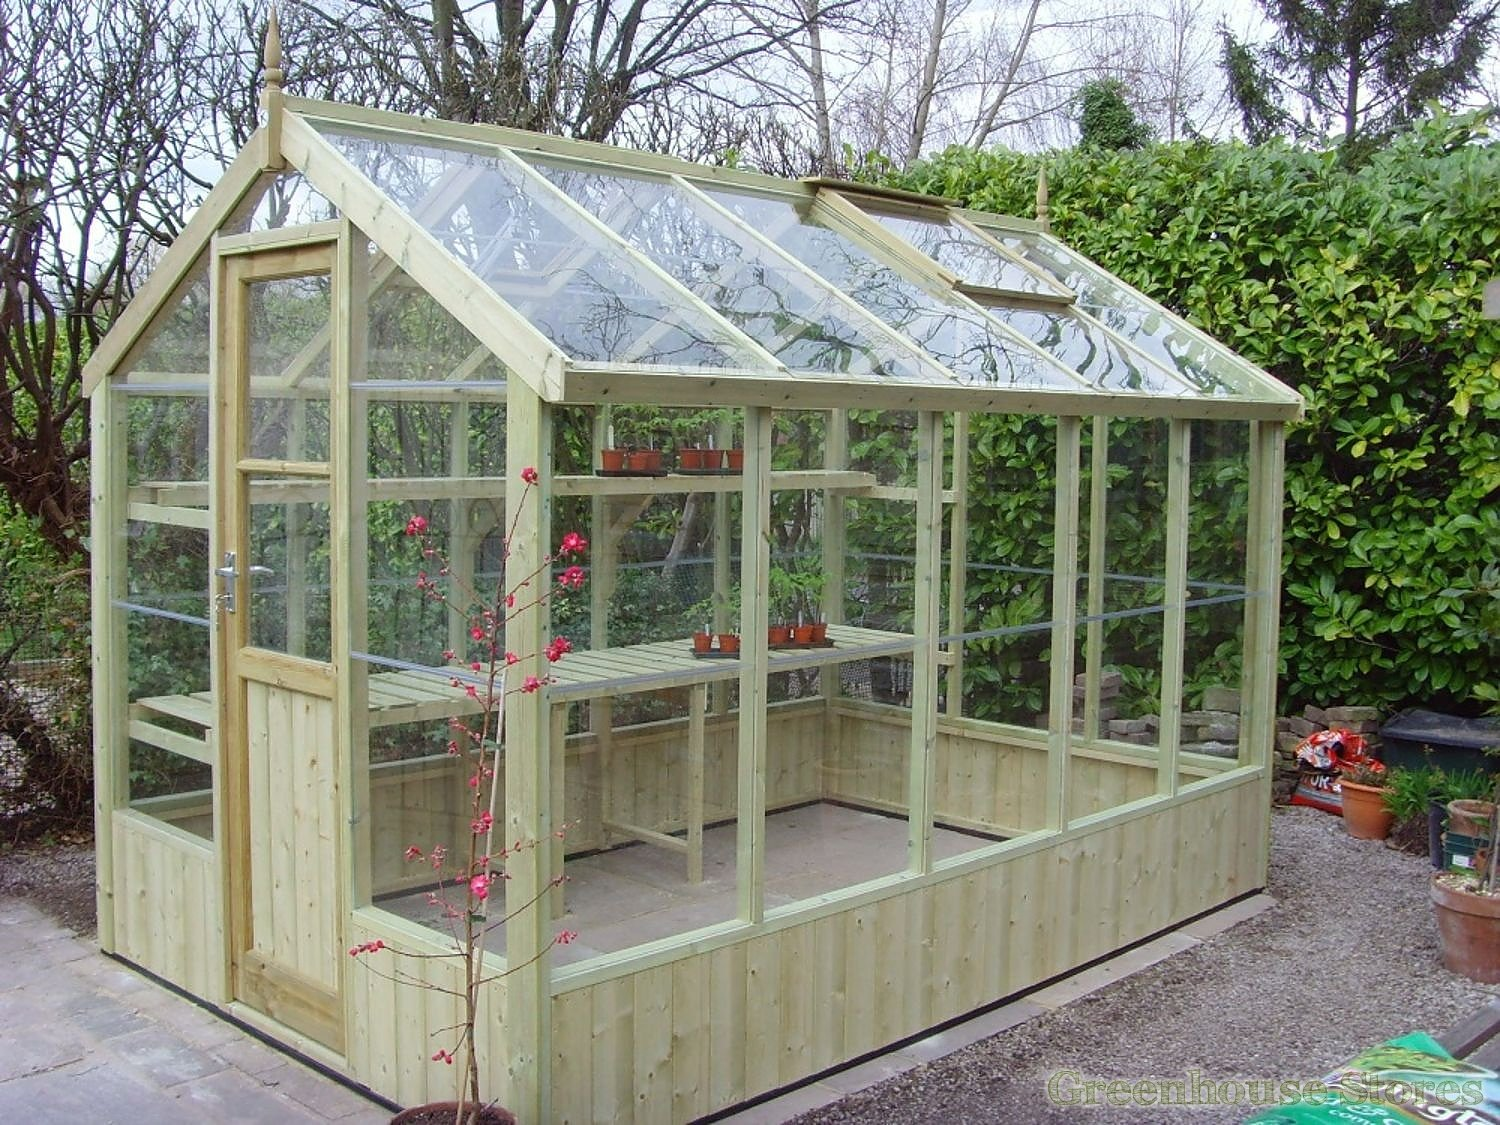 Swallow kingfisher 6x10 wooden greenhouse for Small wooden greenhouse plans